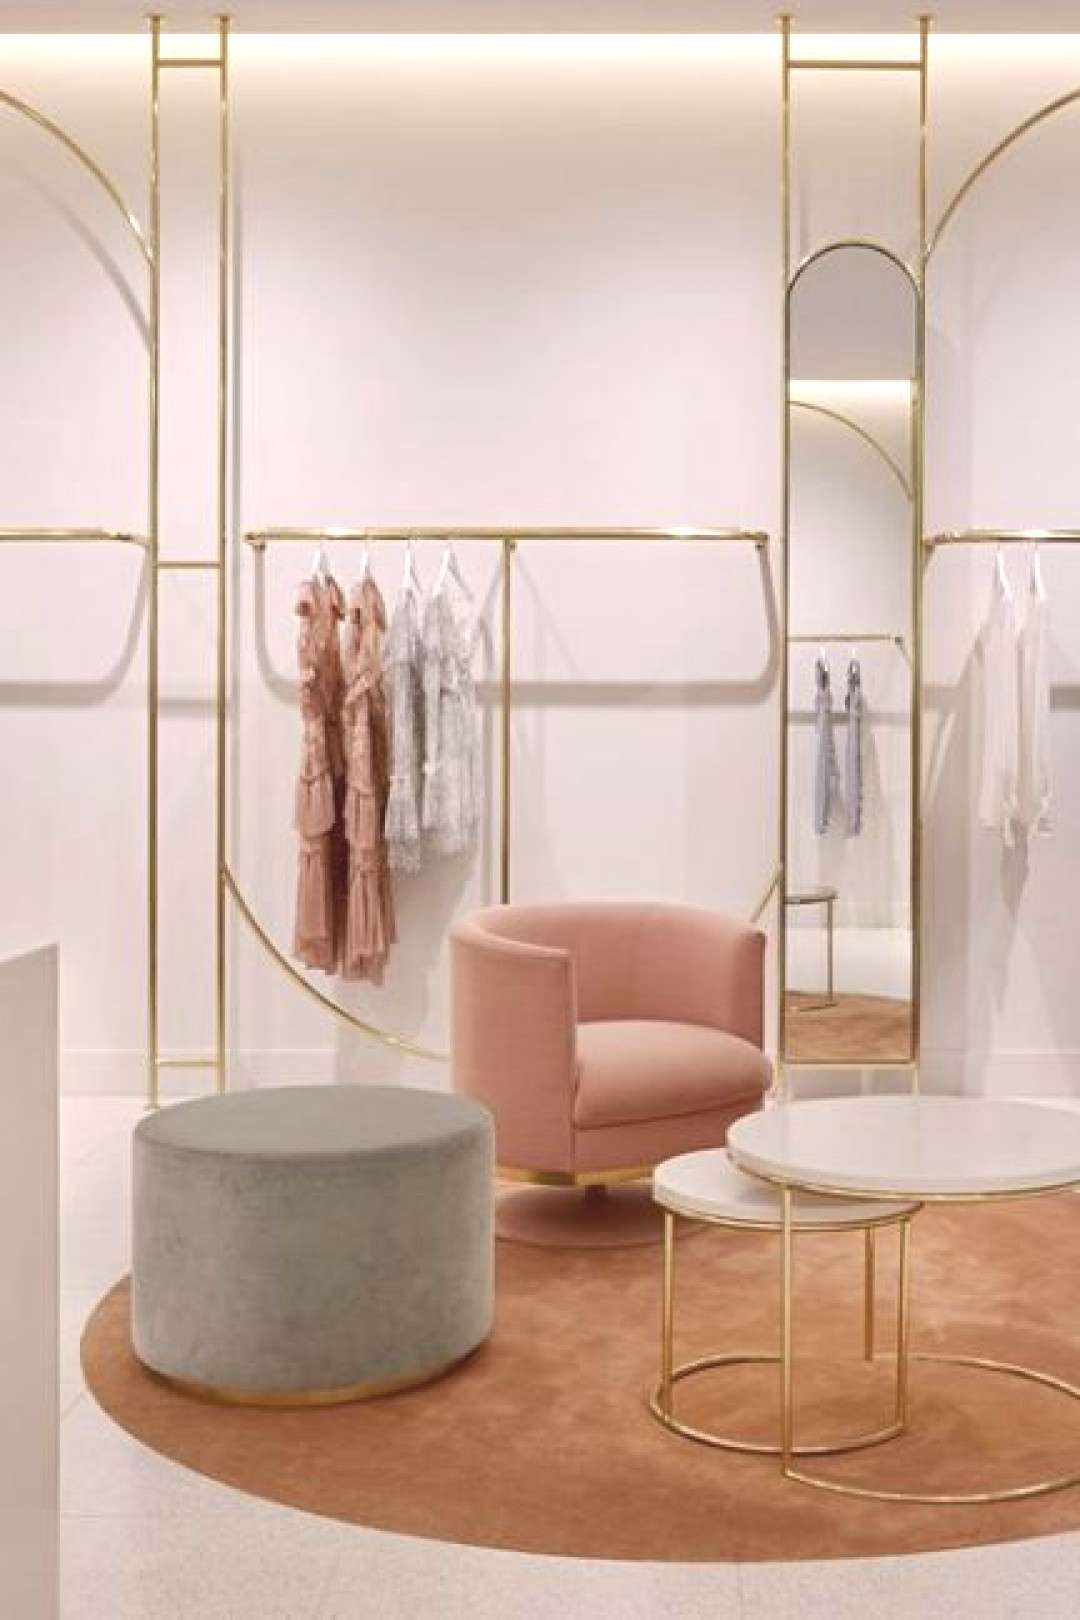 24+ New Ideas For Clothes Store Display Retail 24+ New Ideas For Clothes Store Display Retail